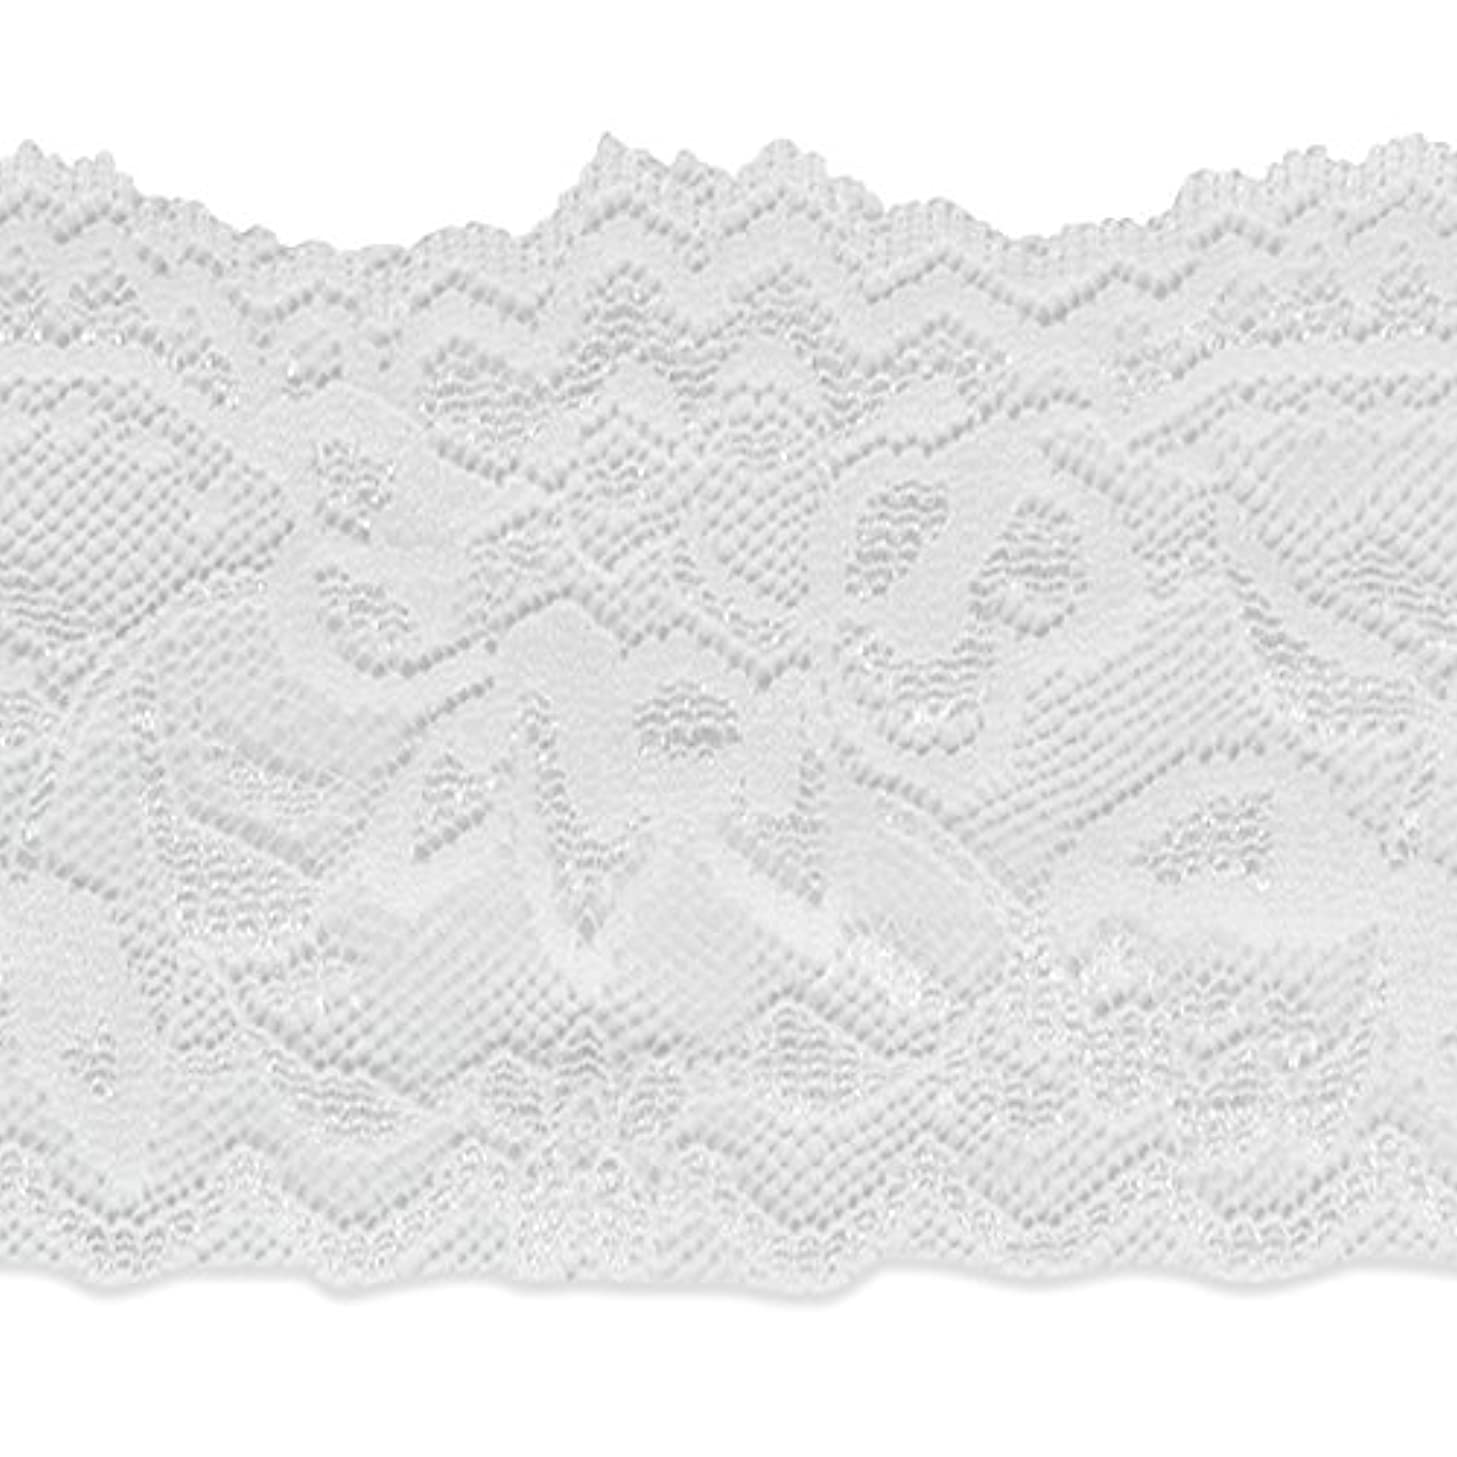 Expo International IR8098WH-20 20 Yards of Lace Trim 20 yd White